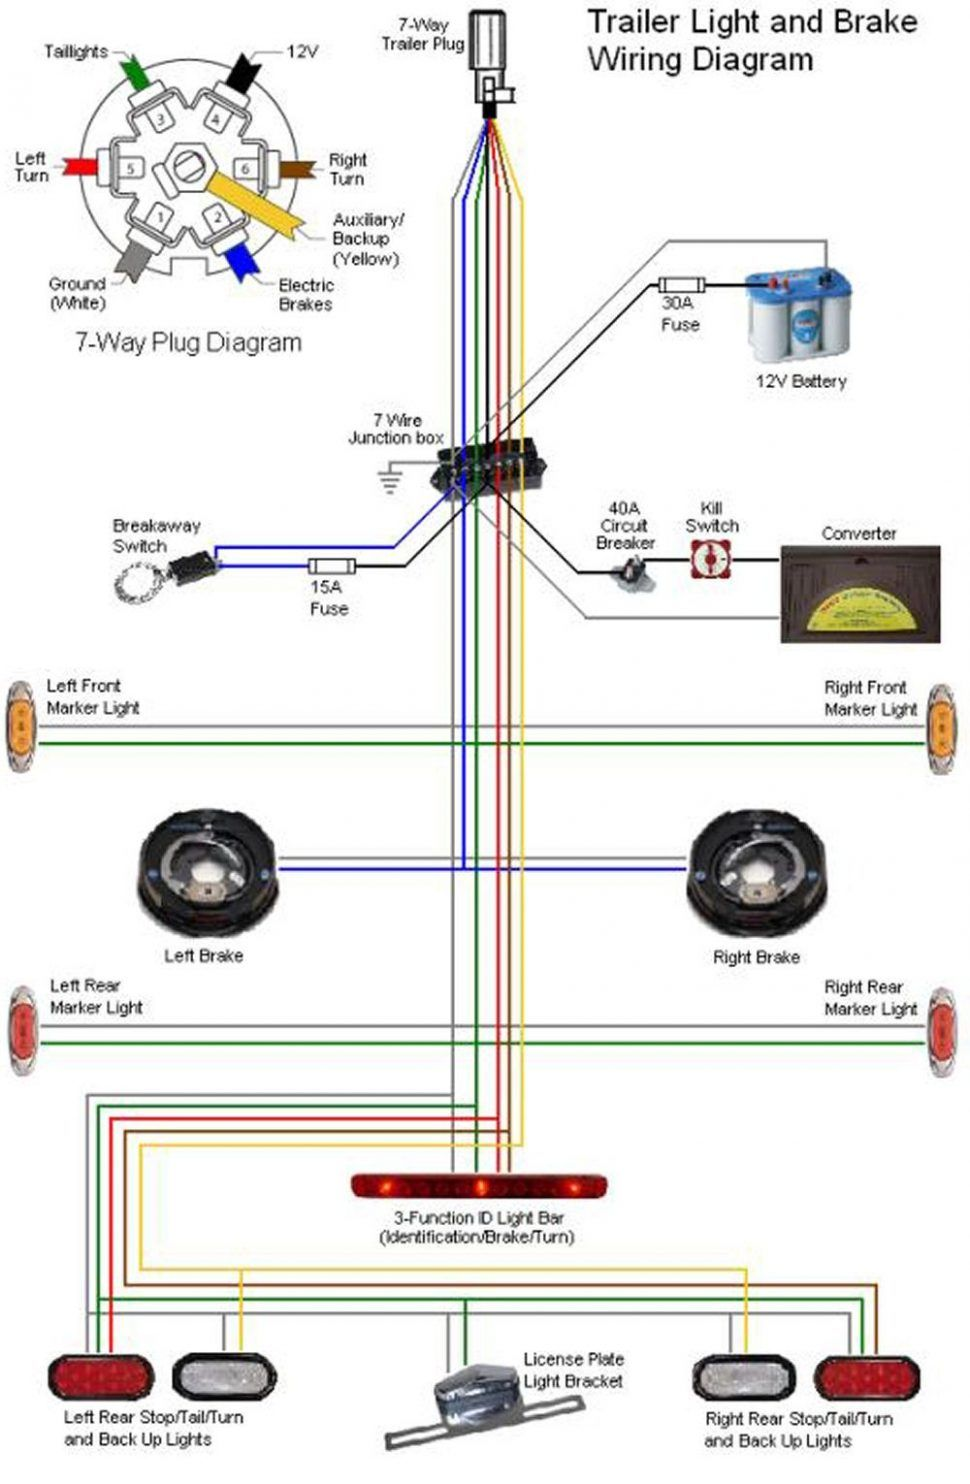 custom trailer wiring diagram list of wiring diagrams Custom Trailer Wiring Diagram jeep cherokee 2014 2018 wiring kit